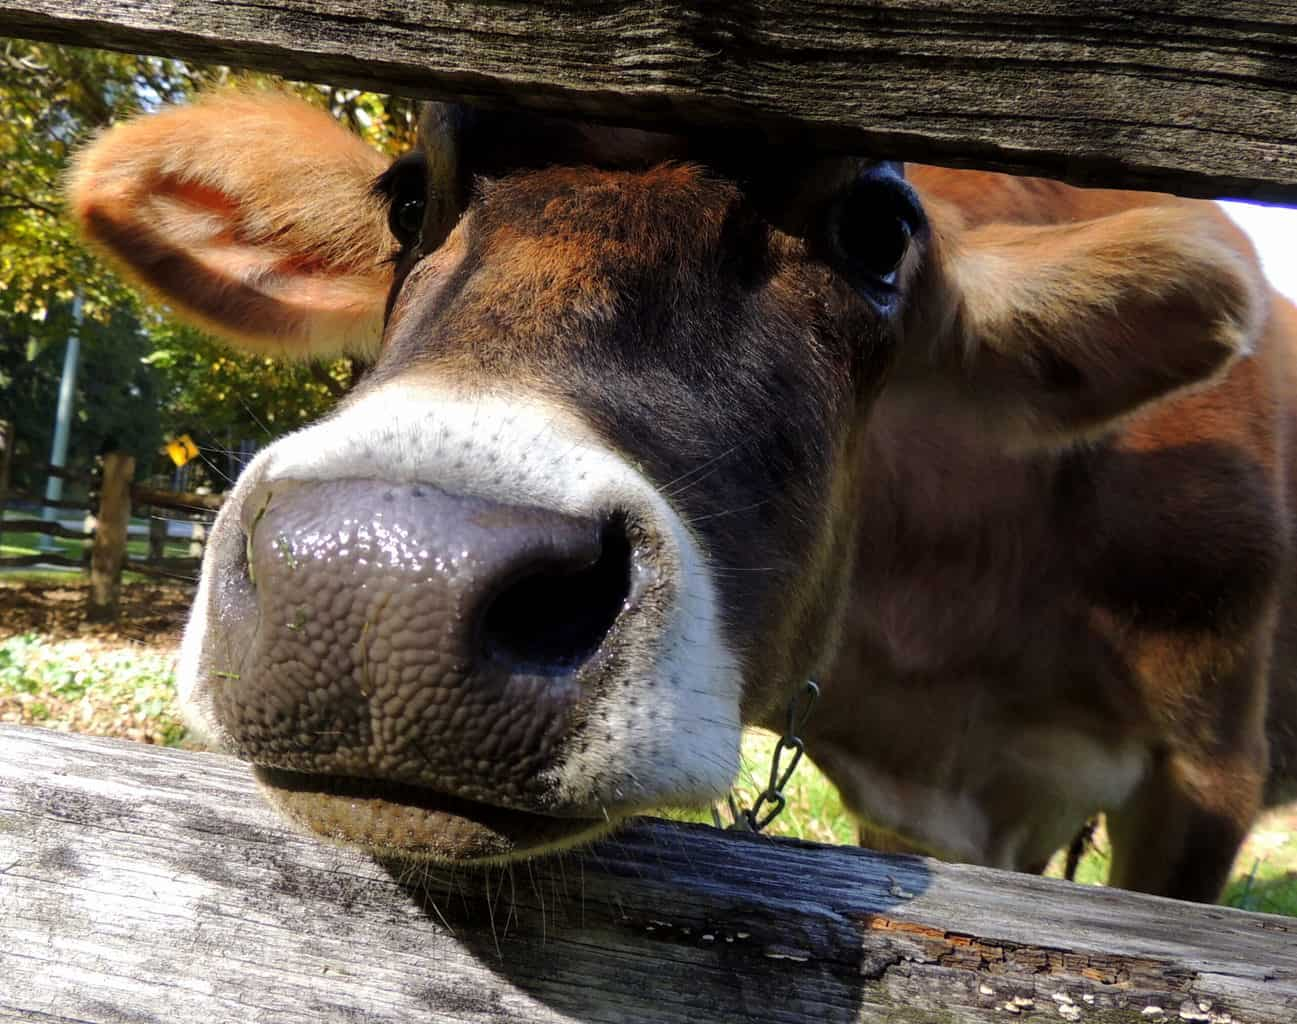 A cow at Billings Farm in Woodstock, Vermont